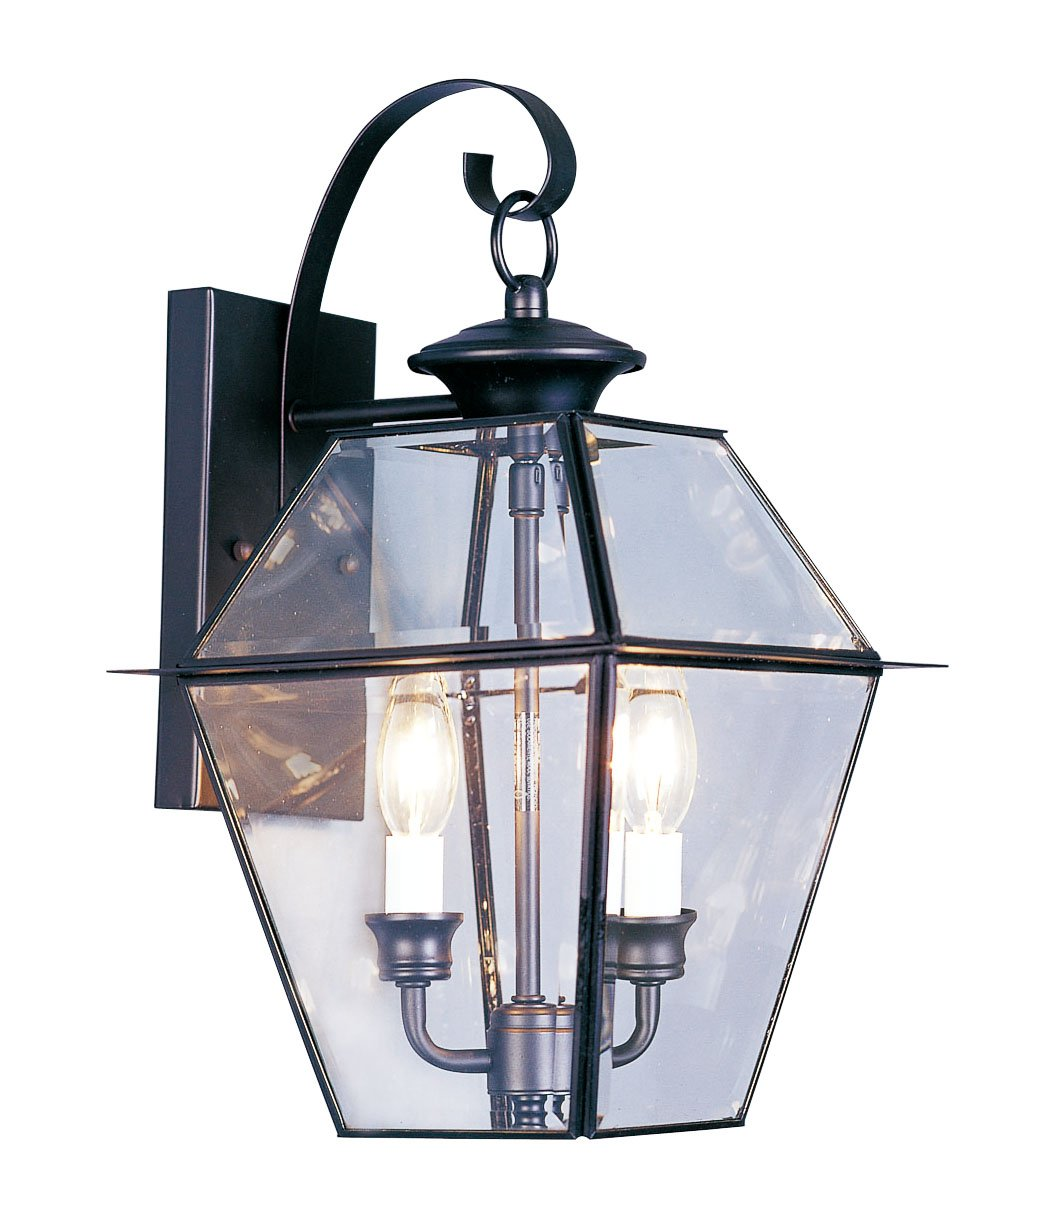 Livex Lighting 2281-04 Westover 2 Light Outdoor Black Finish Solid Brass Wall Lantern  with Clear Beveled Glass